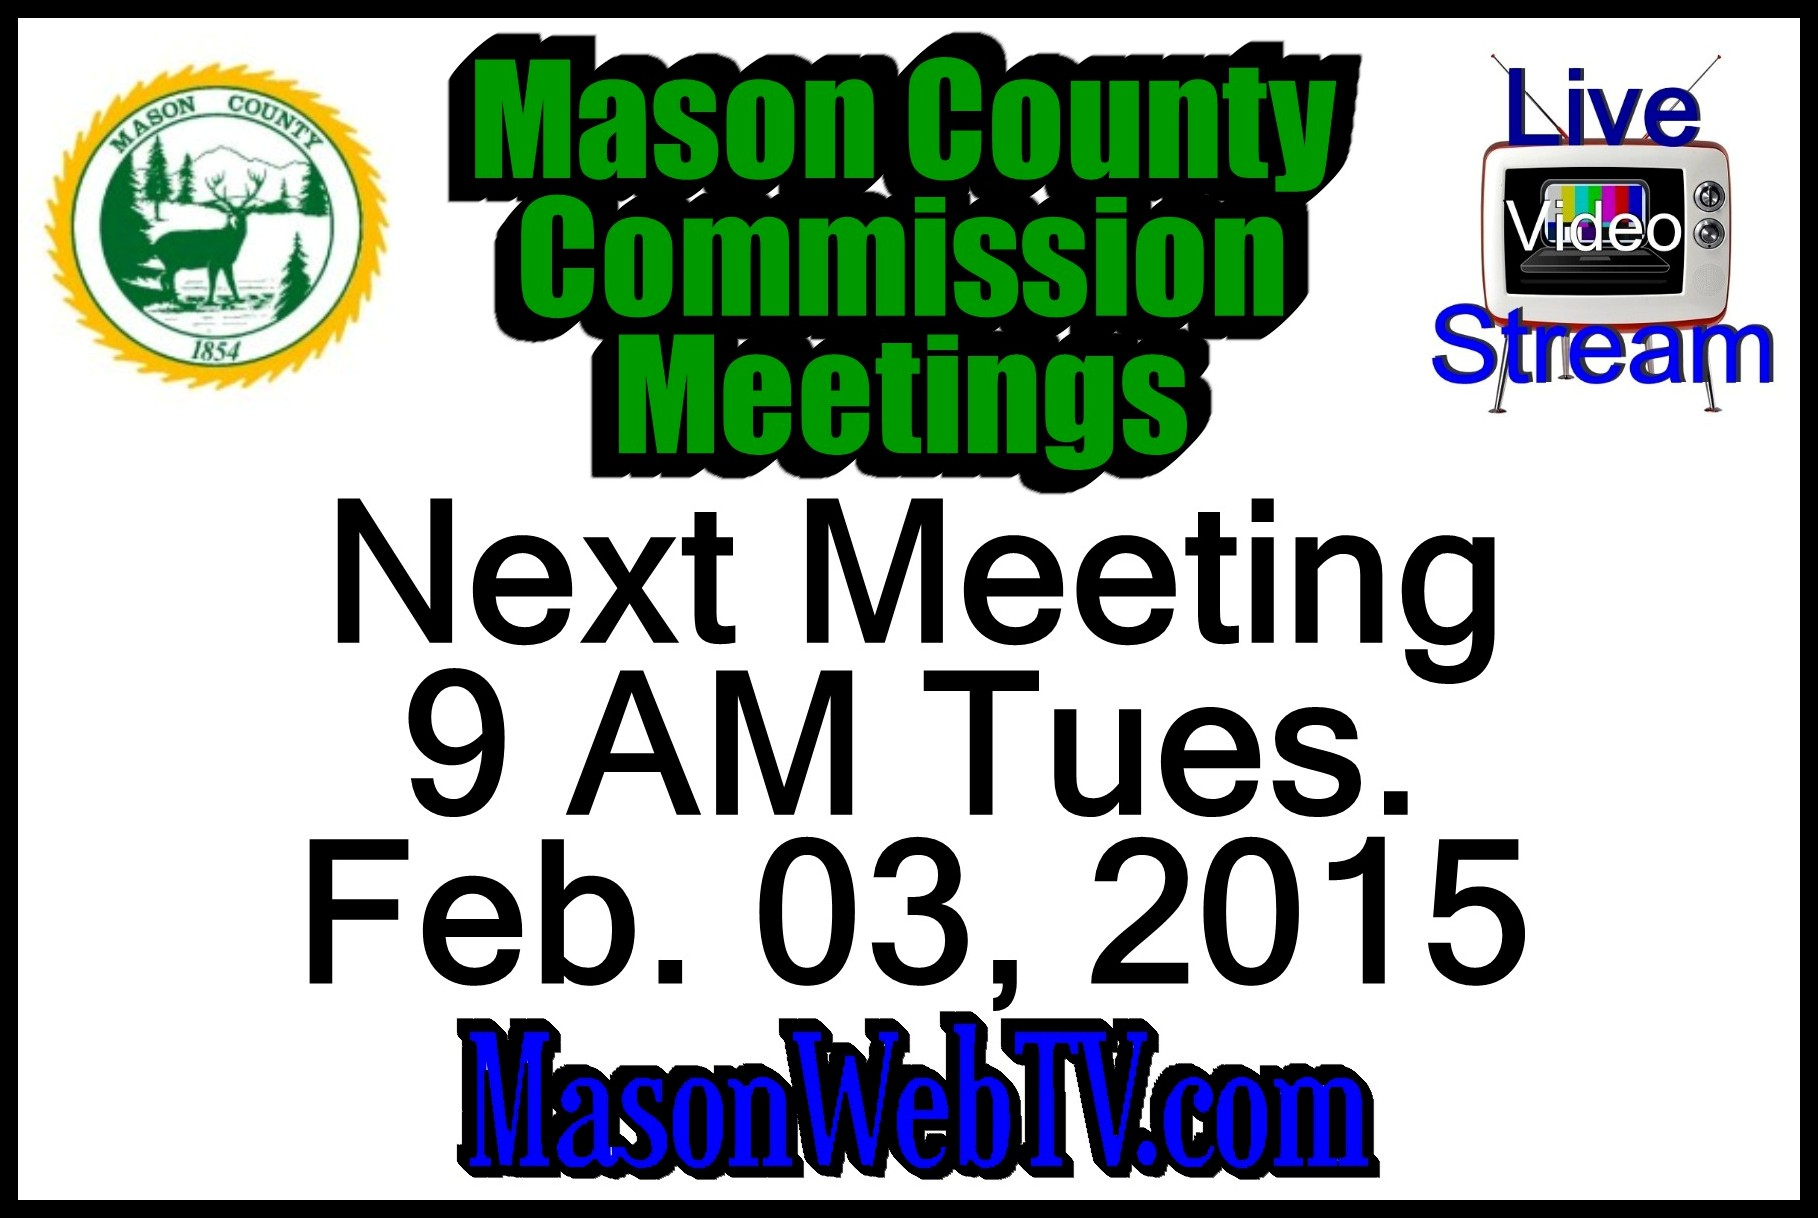 Mason County Commission